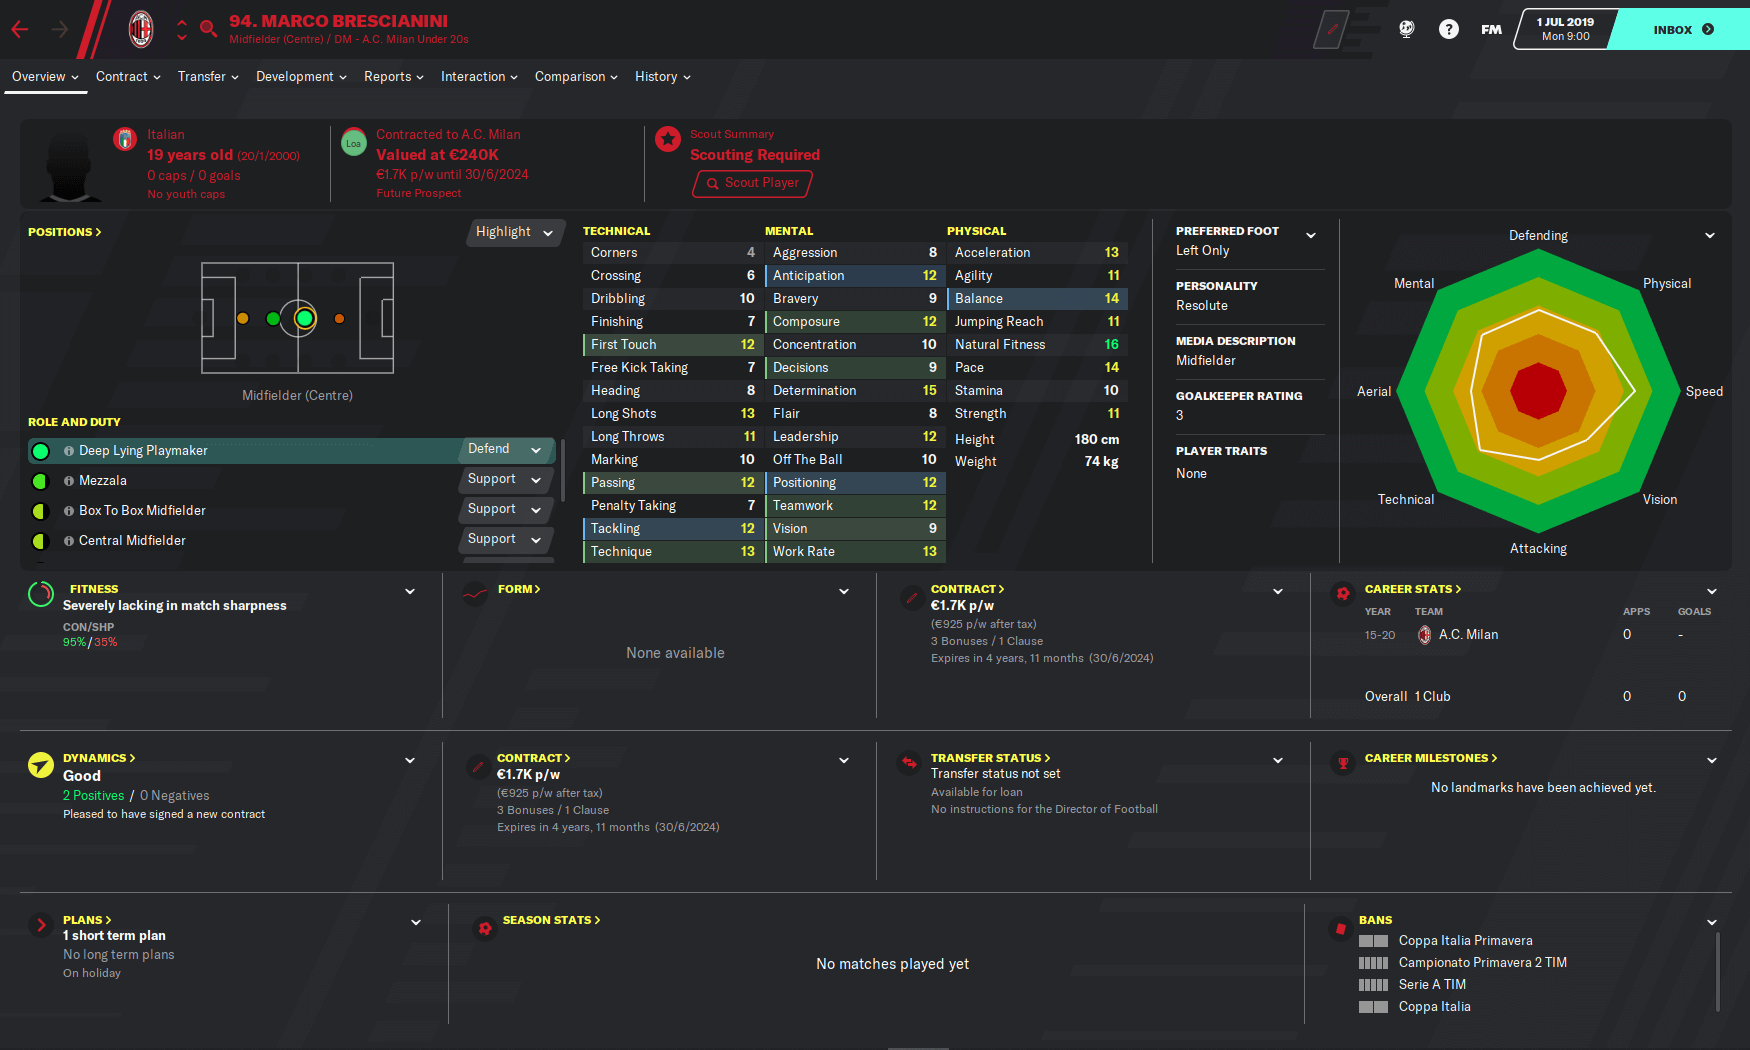 Marco Brescianini FM20 player profile